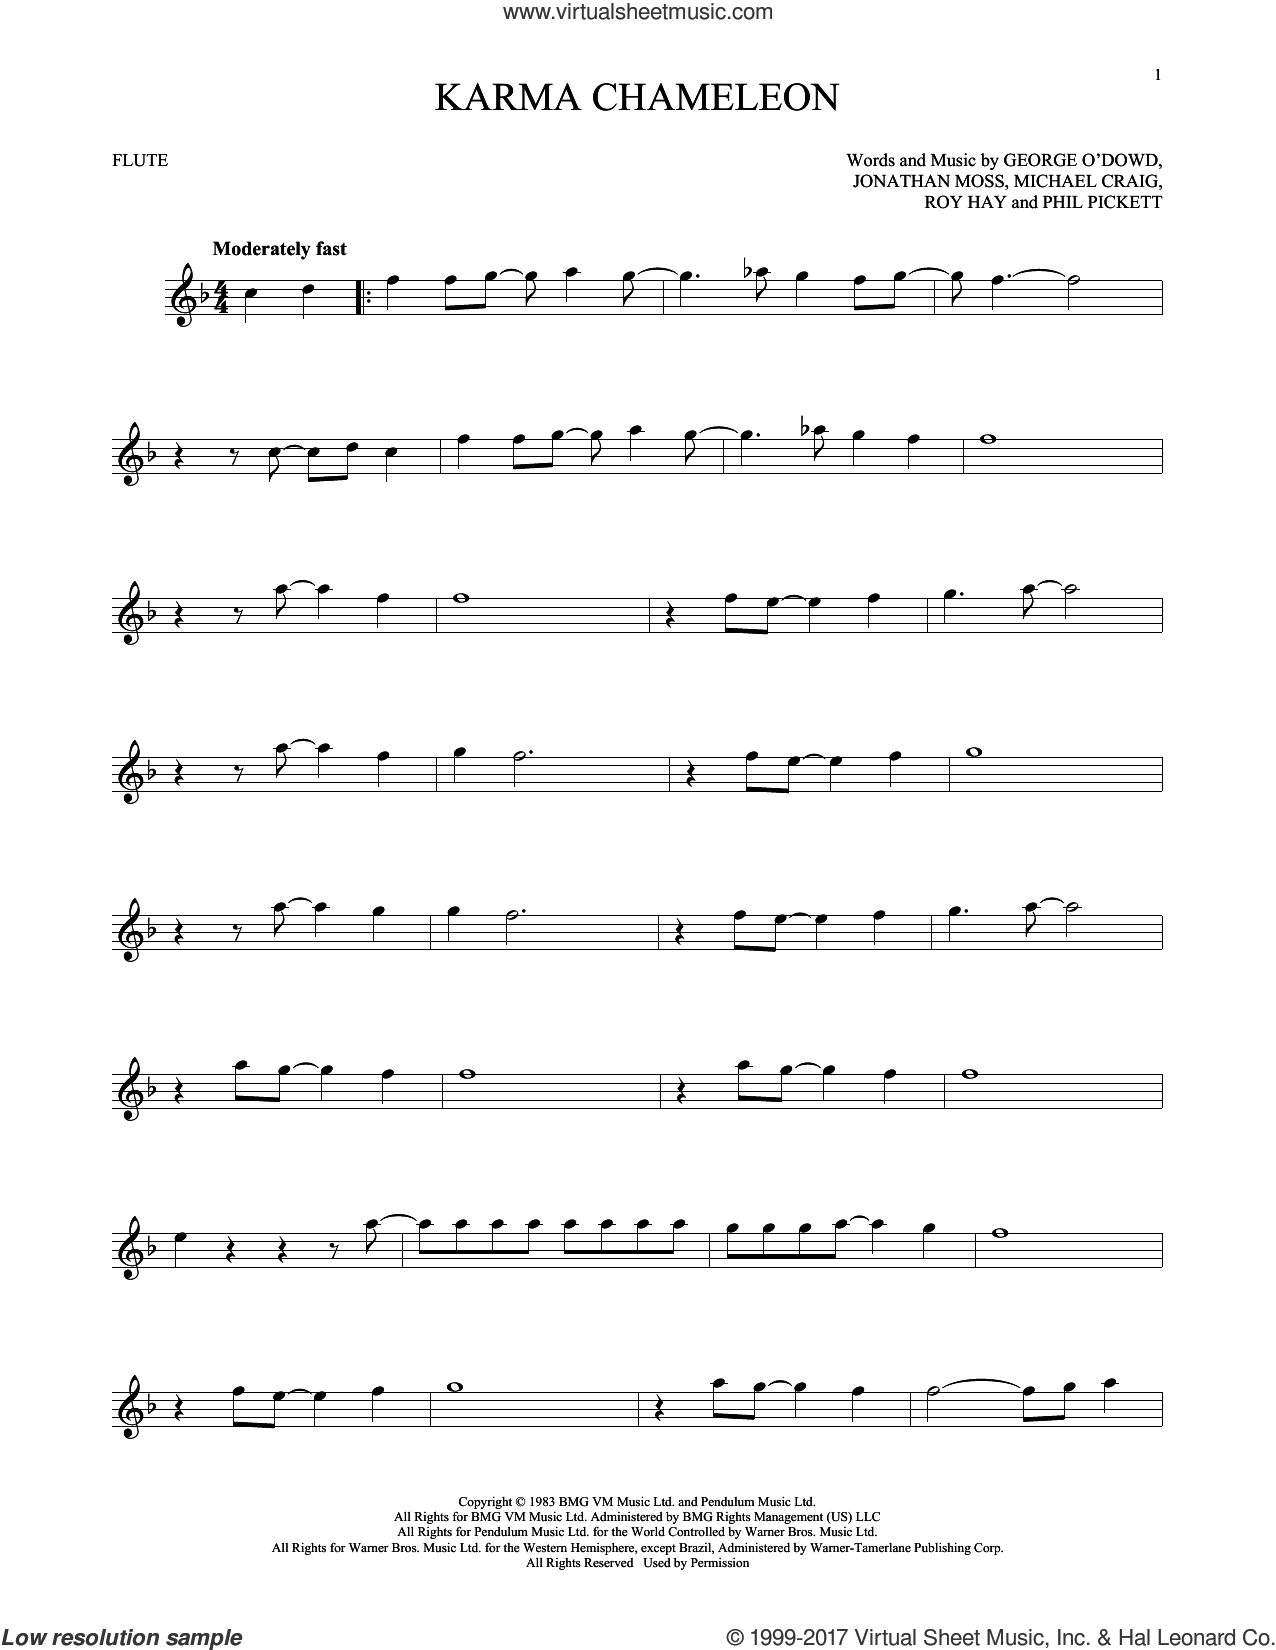 Karma Chameleon sheet music for flute solo by Culture Club, Jonathan Moss, Michael Craig, Phil Pickett and Roy Hay, intermediate skill level